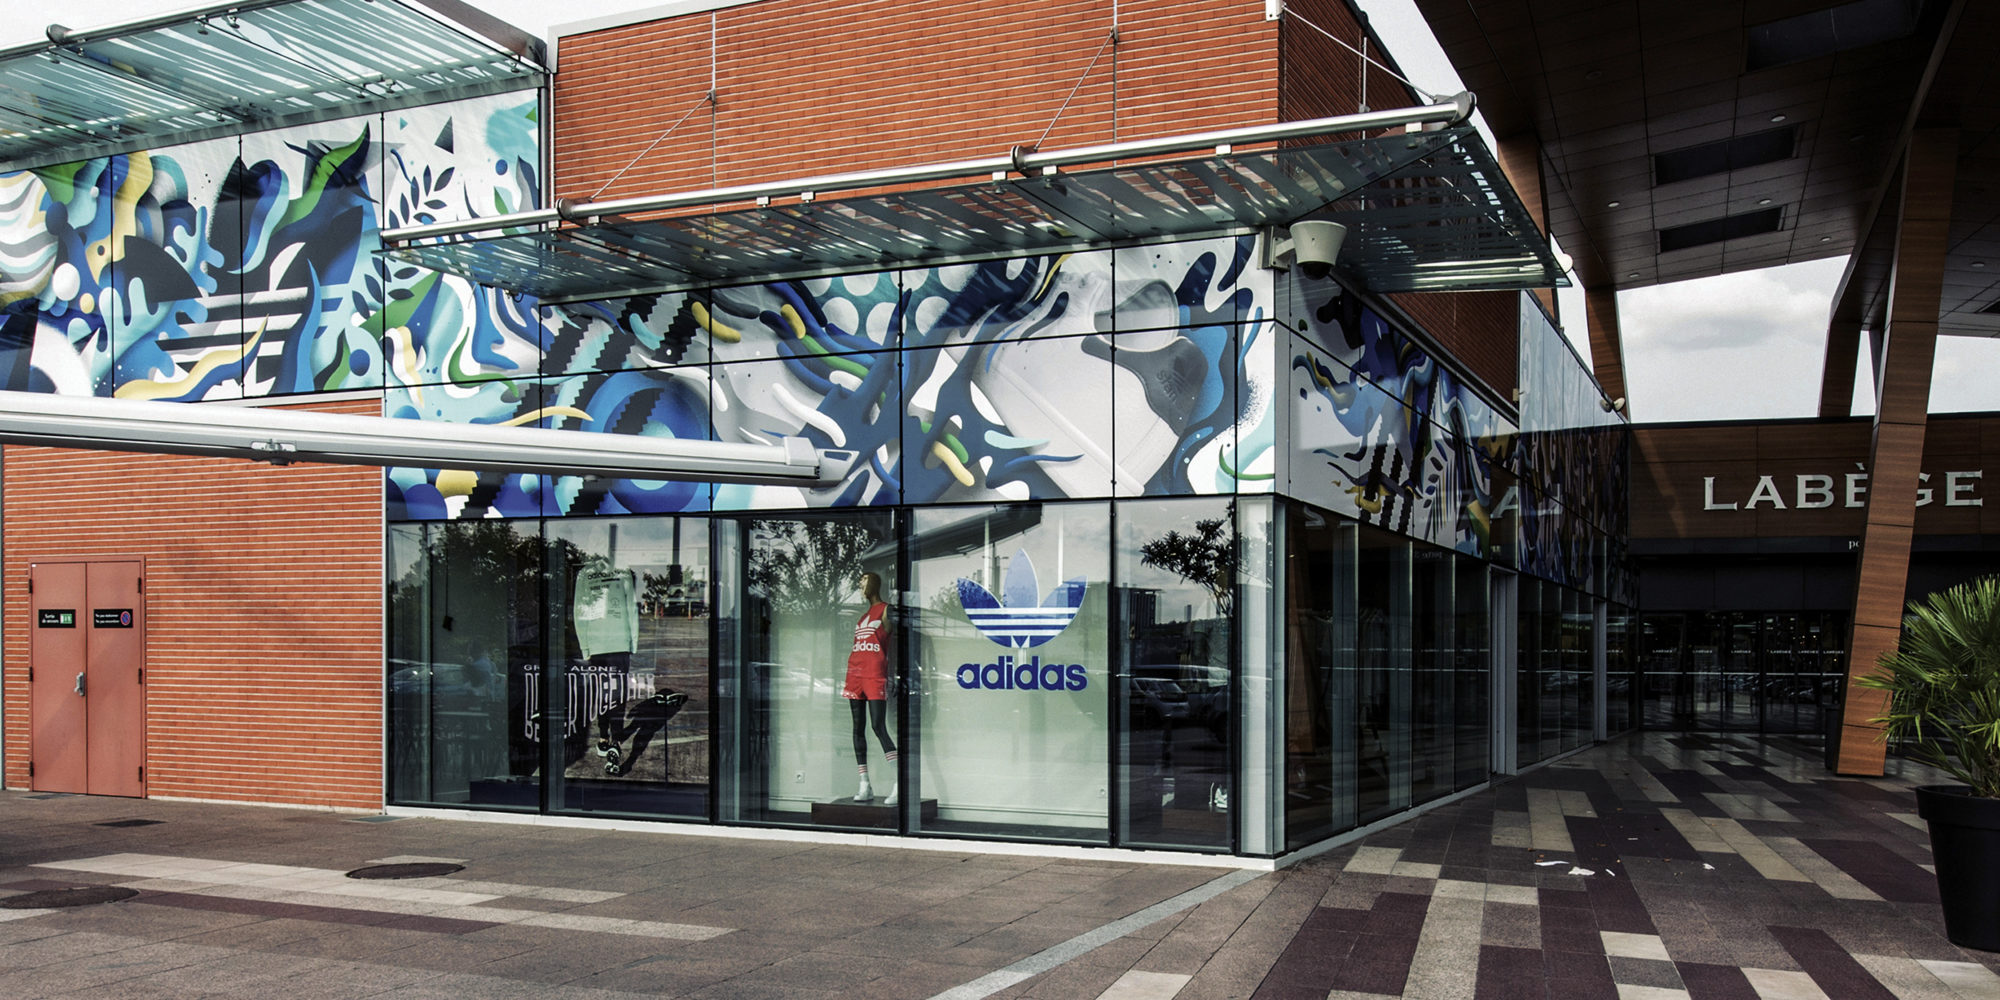 Adidas Toulouse Labege